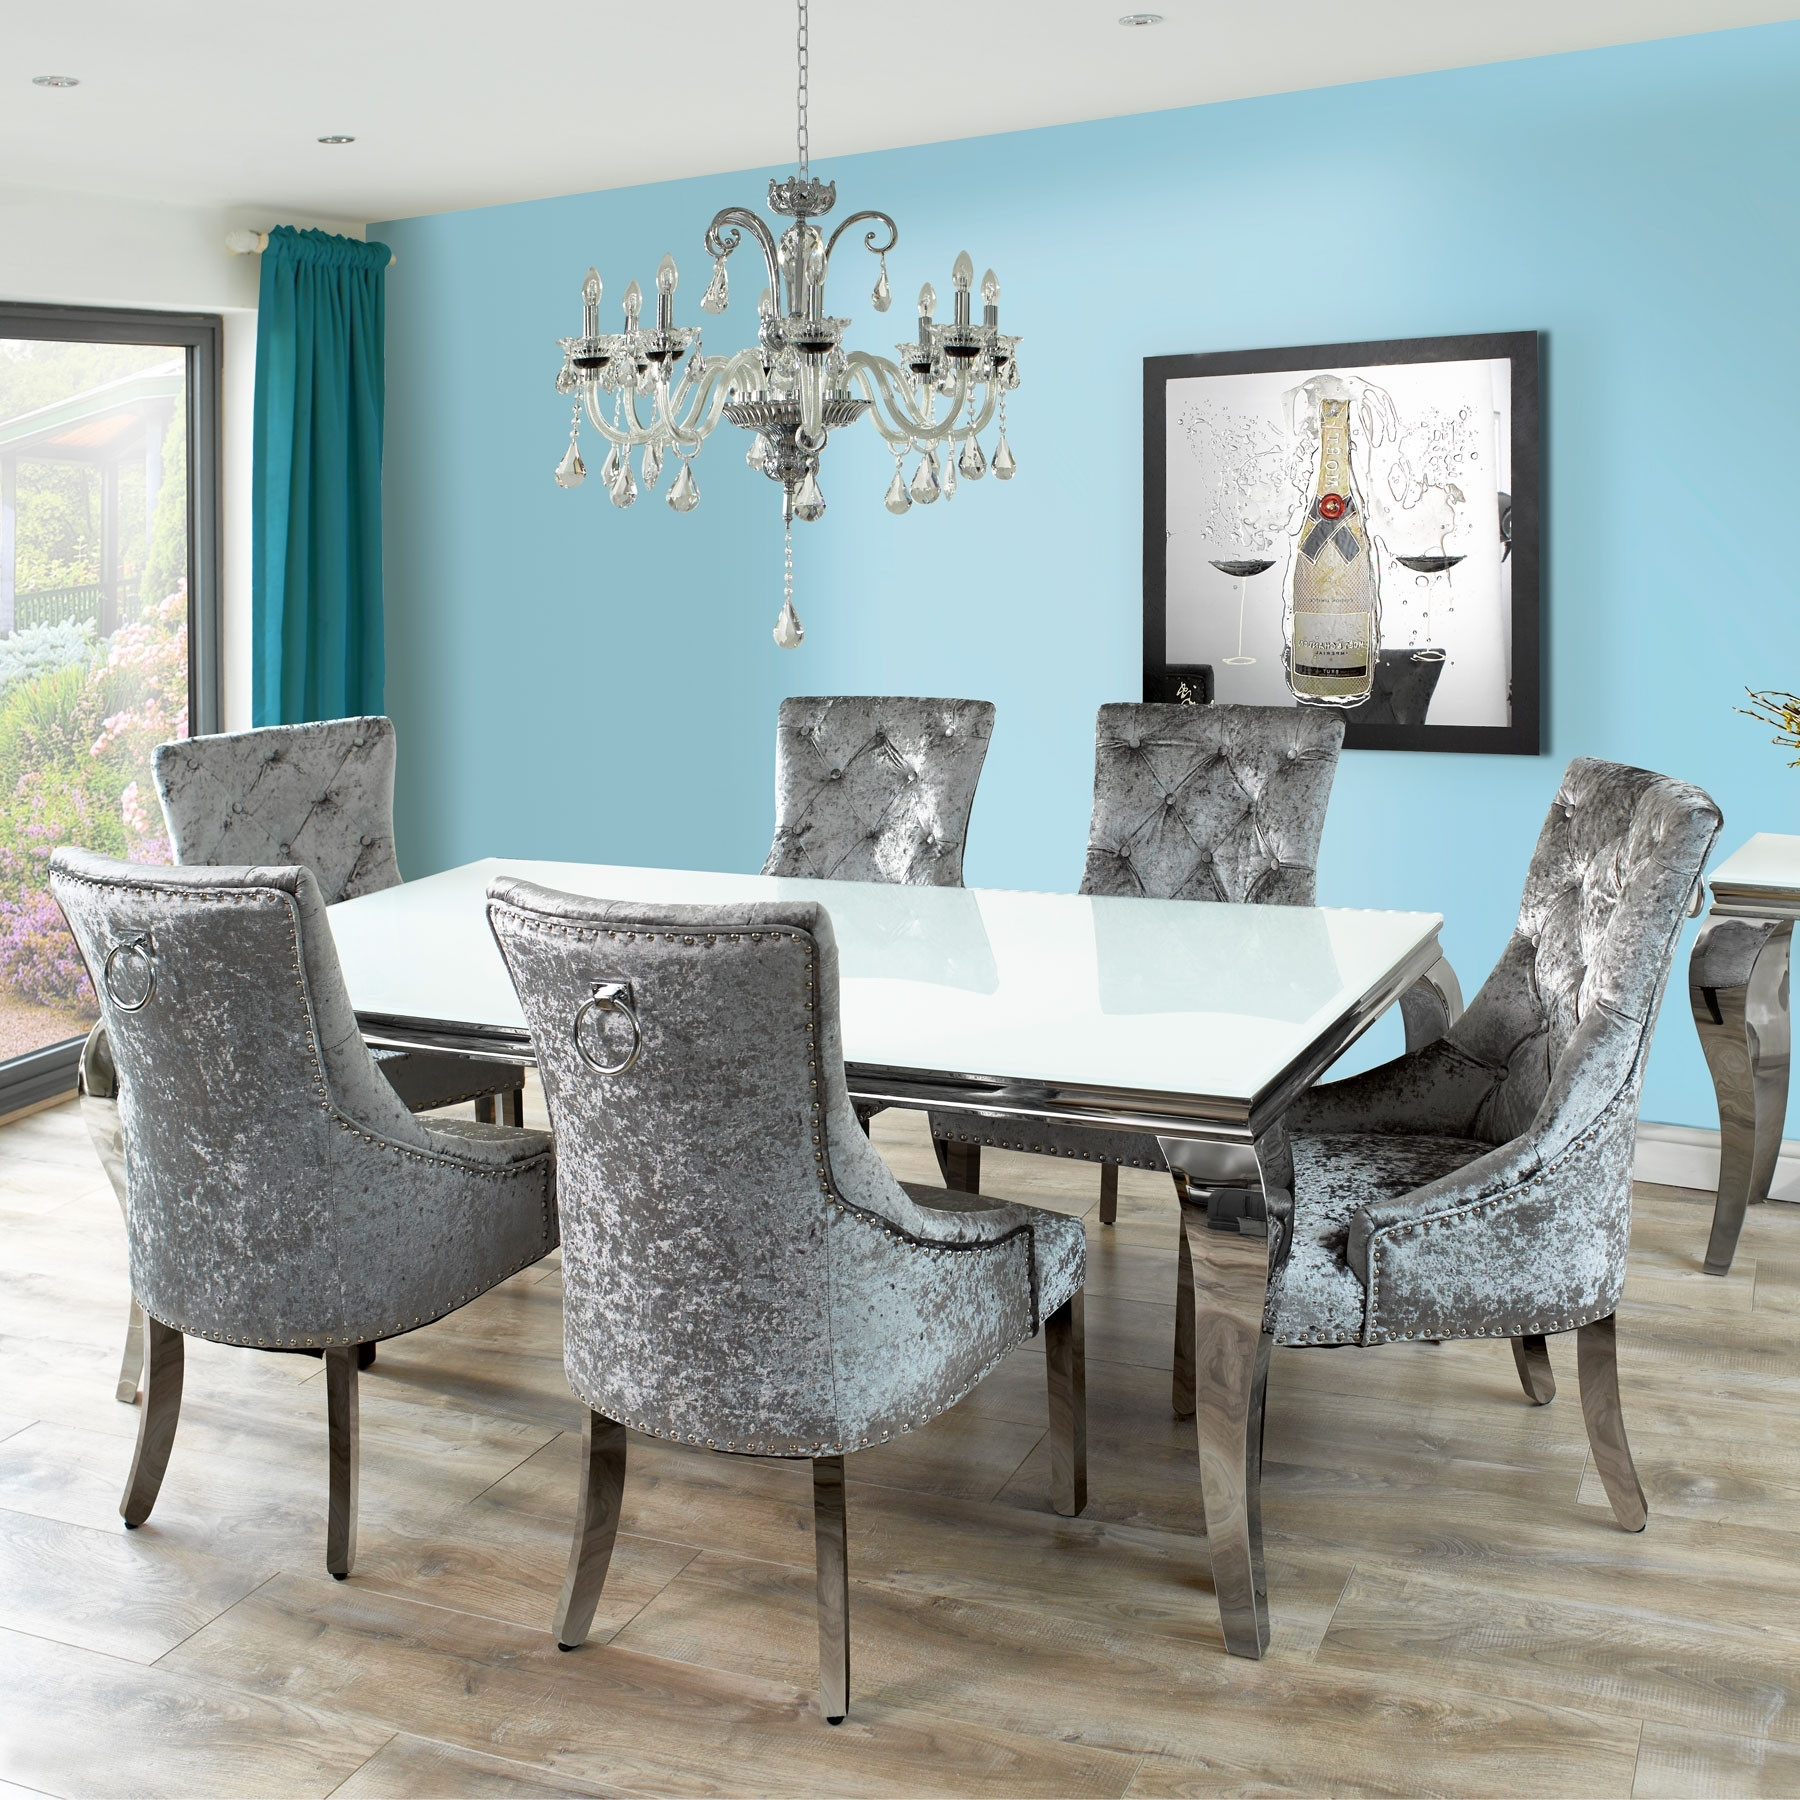 Well Liked Fadenza Small White Glass Dining Table & 4 Silver Chairs With In Glass Dining Tables With 6 Chairs (View 23 of 25)